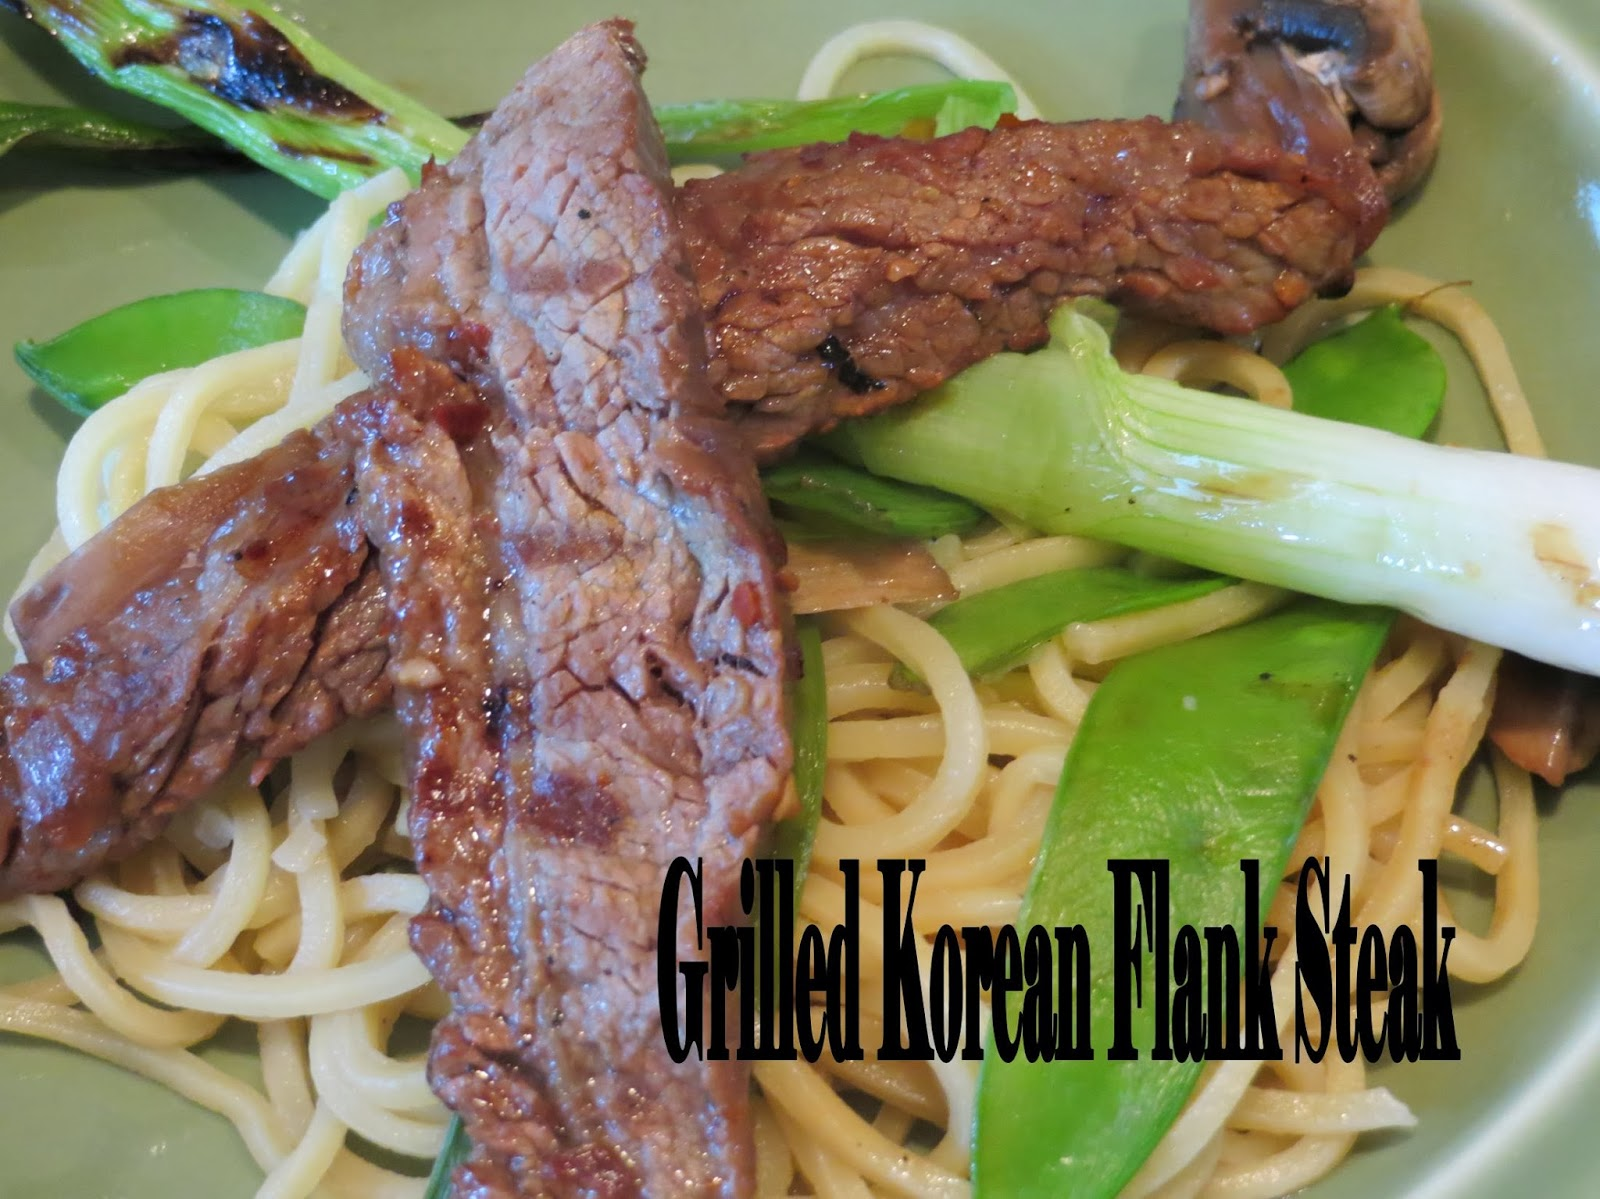 Two Magical Moms: Grilled Korean Flank Steak